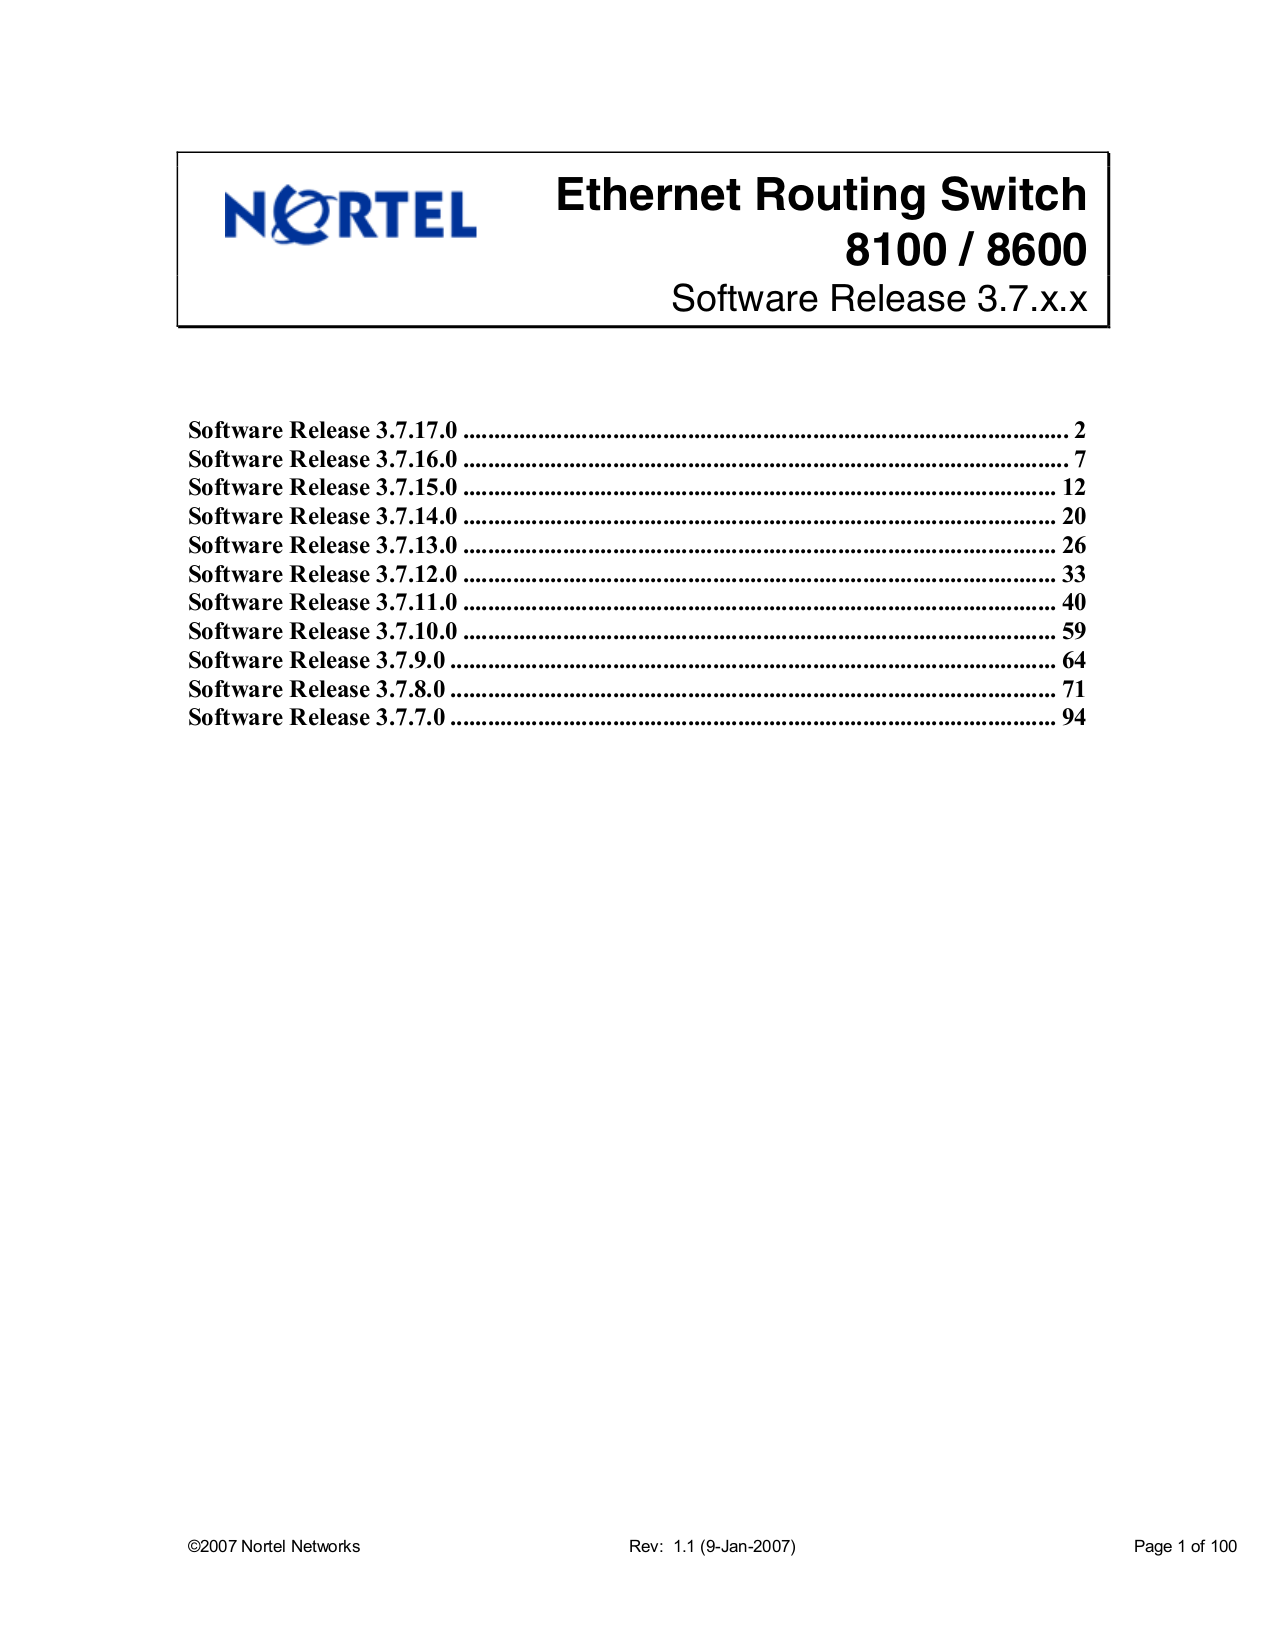 pdf for Nortel Router ASN manual